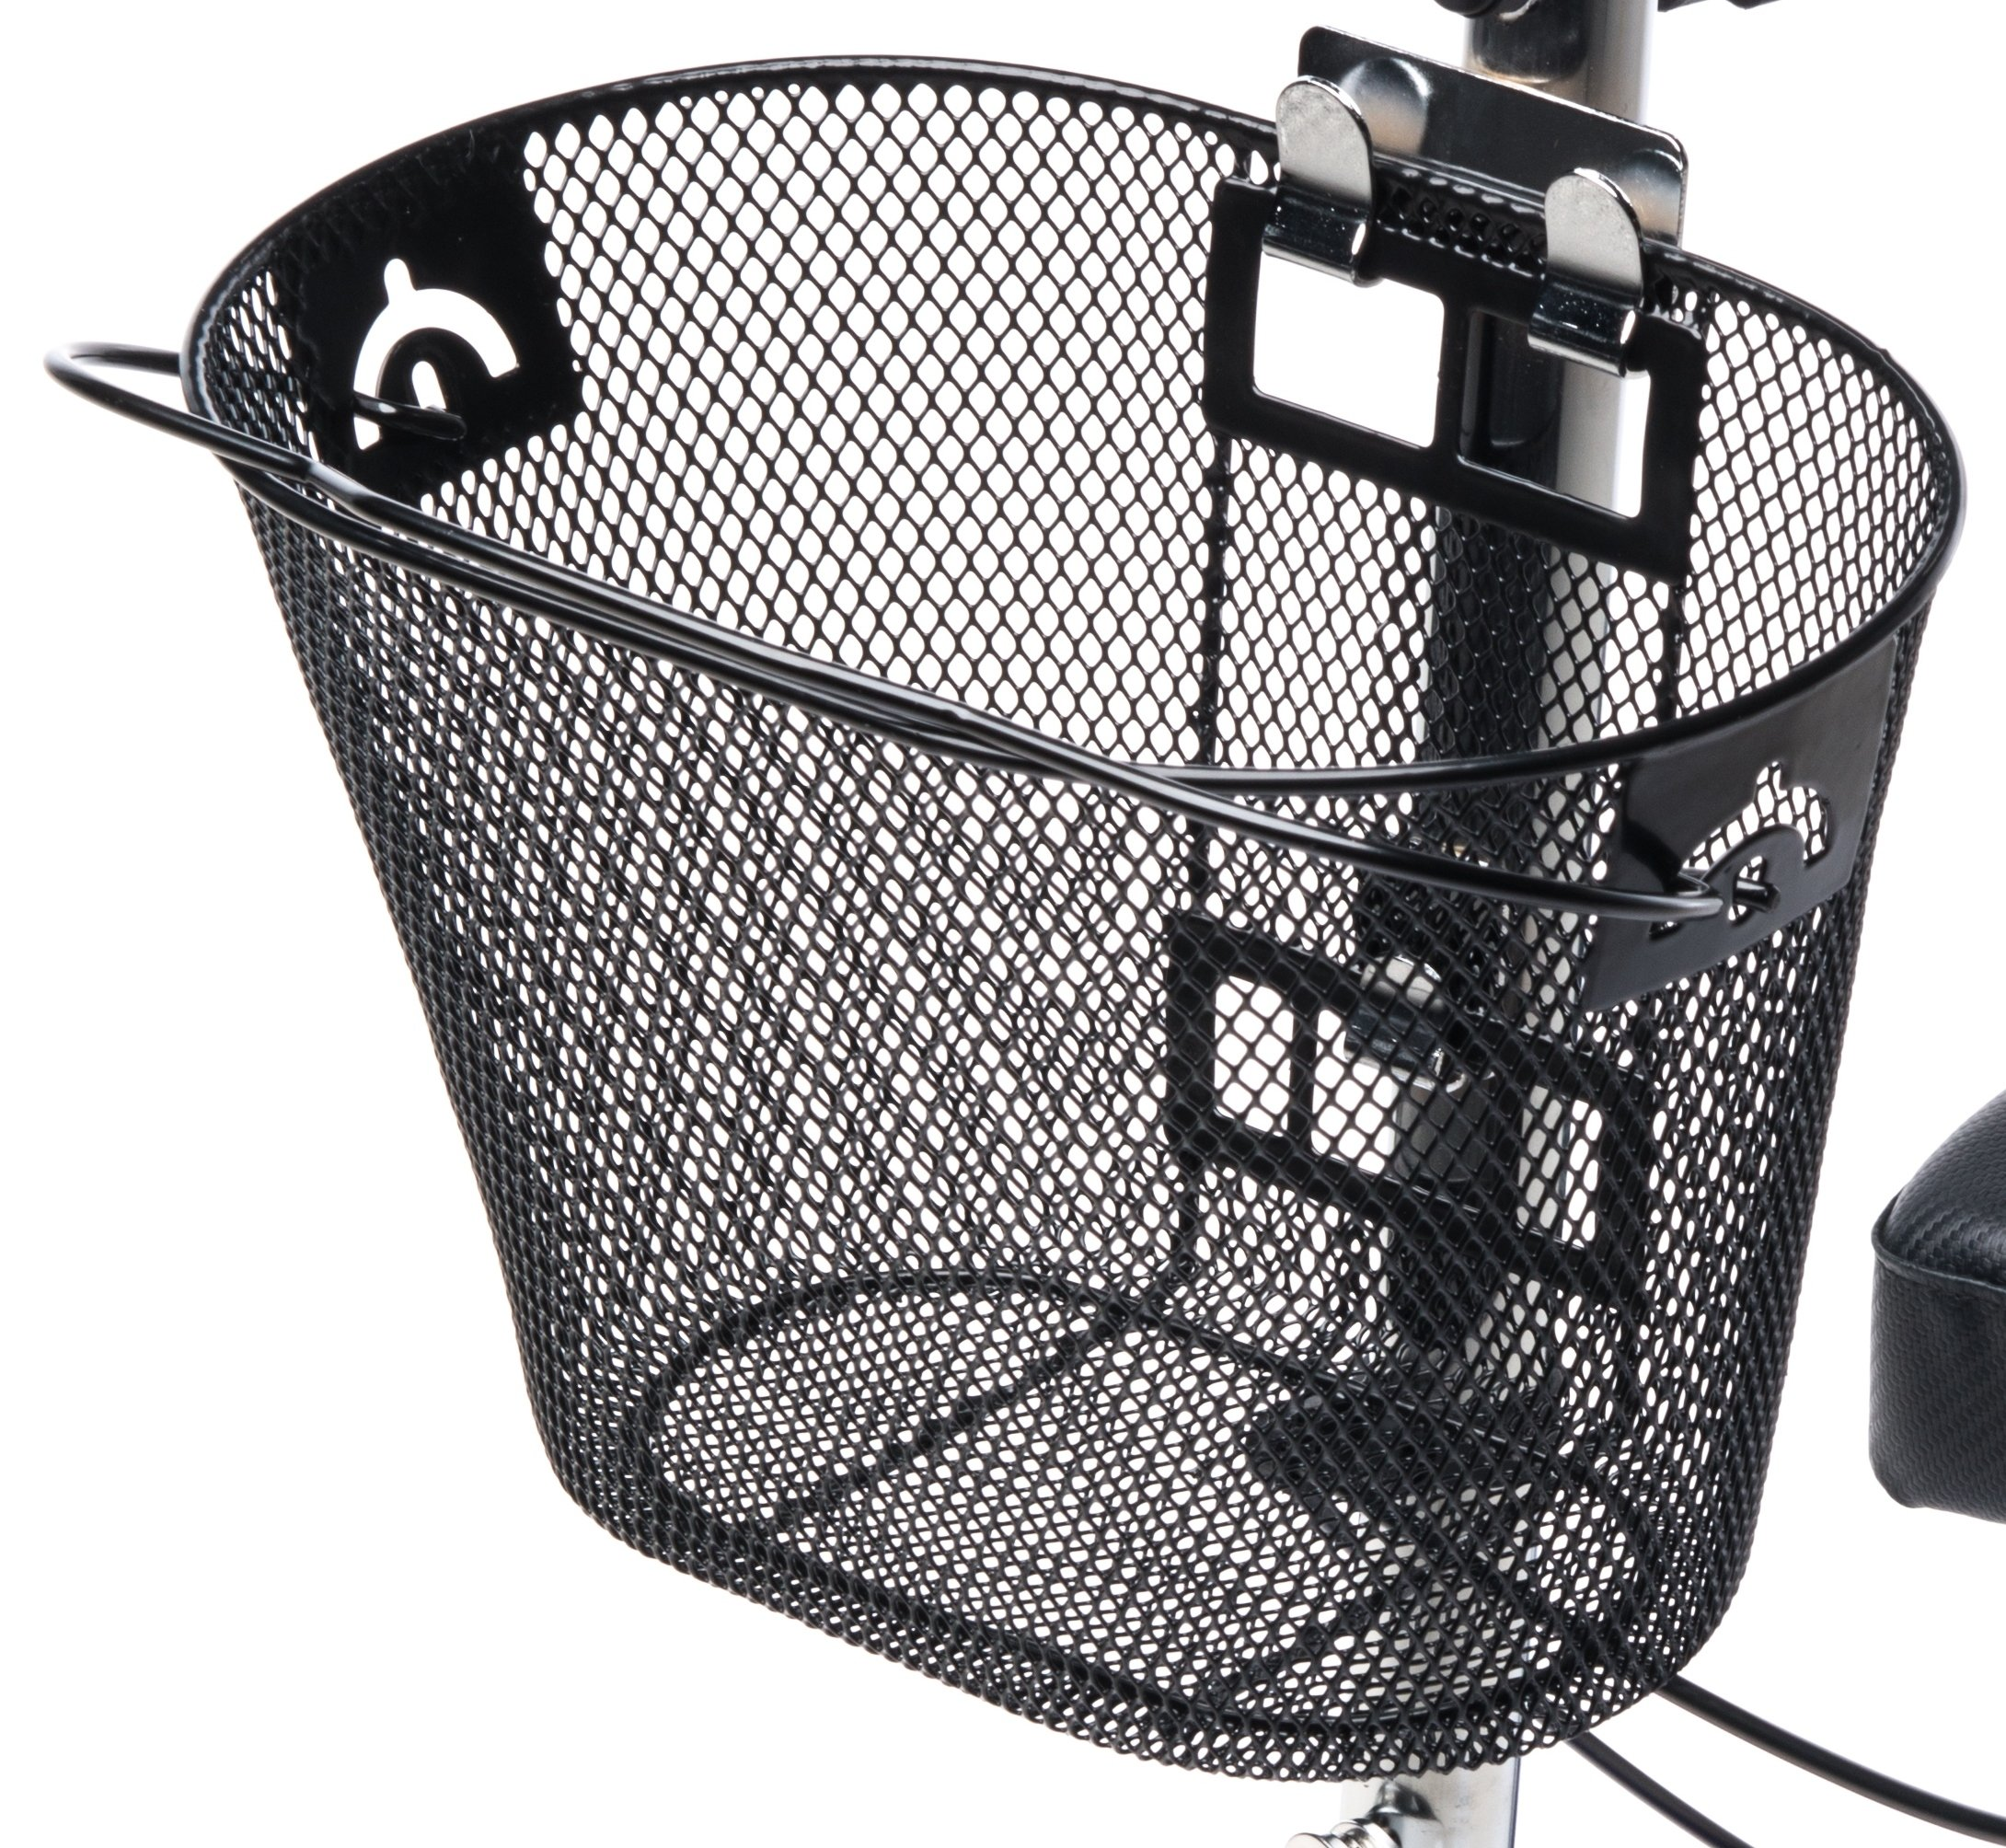 Knee Walker Basket Accessory - Replacement Part with Quick Release and Convenient Handle - INCLUDES ATTACHMENT BRACKET - Compatible with Most Knee Scooters by KneeRover